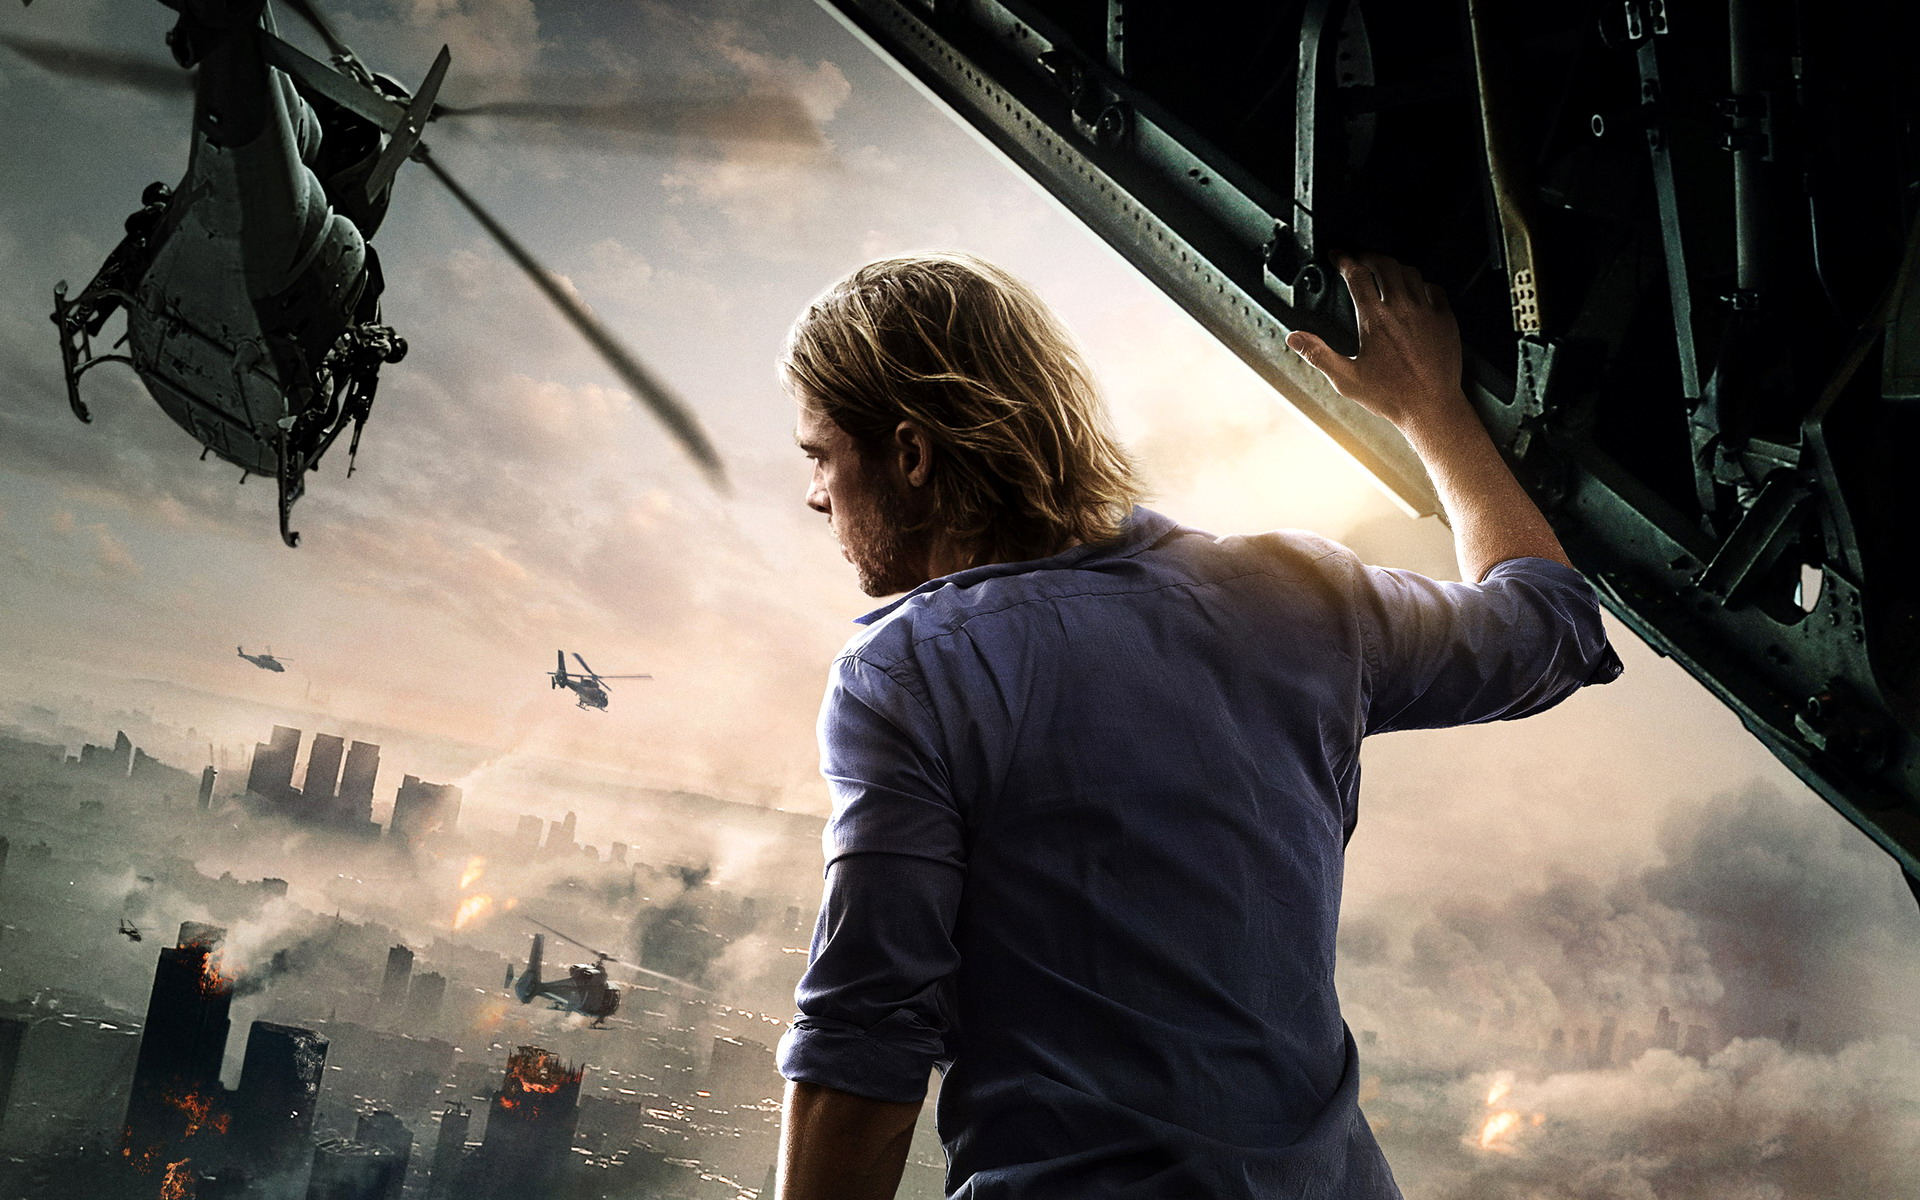 World War Z 2 Is (Predictably) Dead - Freshly Popped Culture